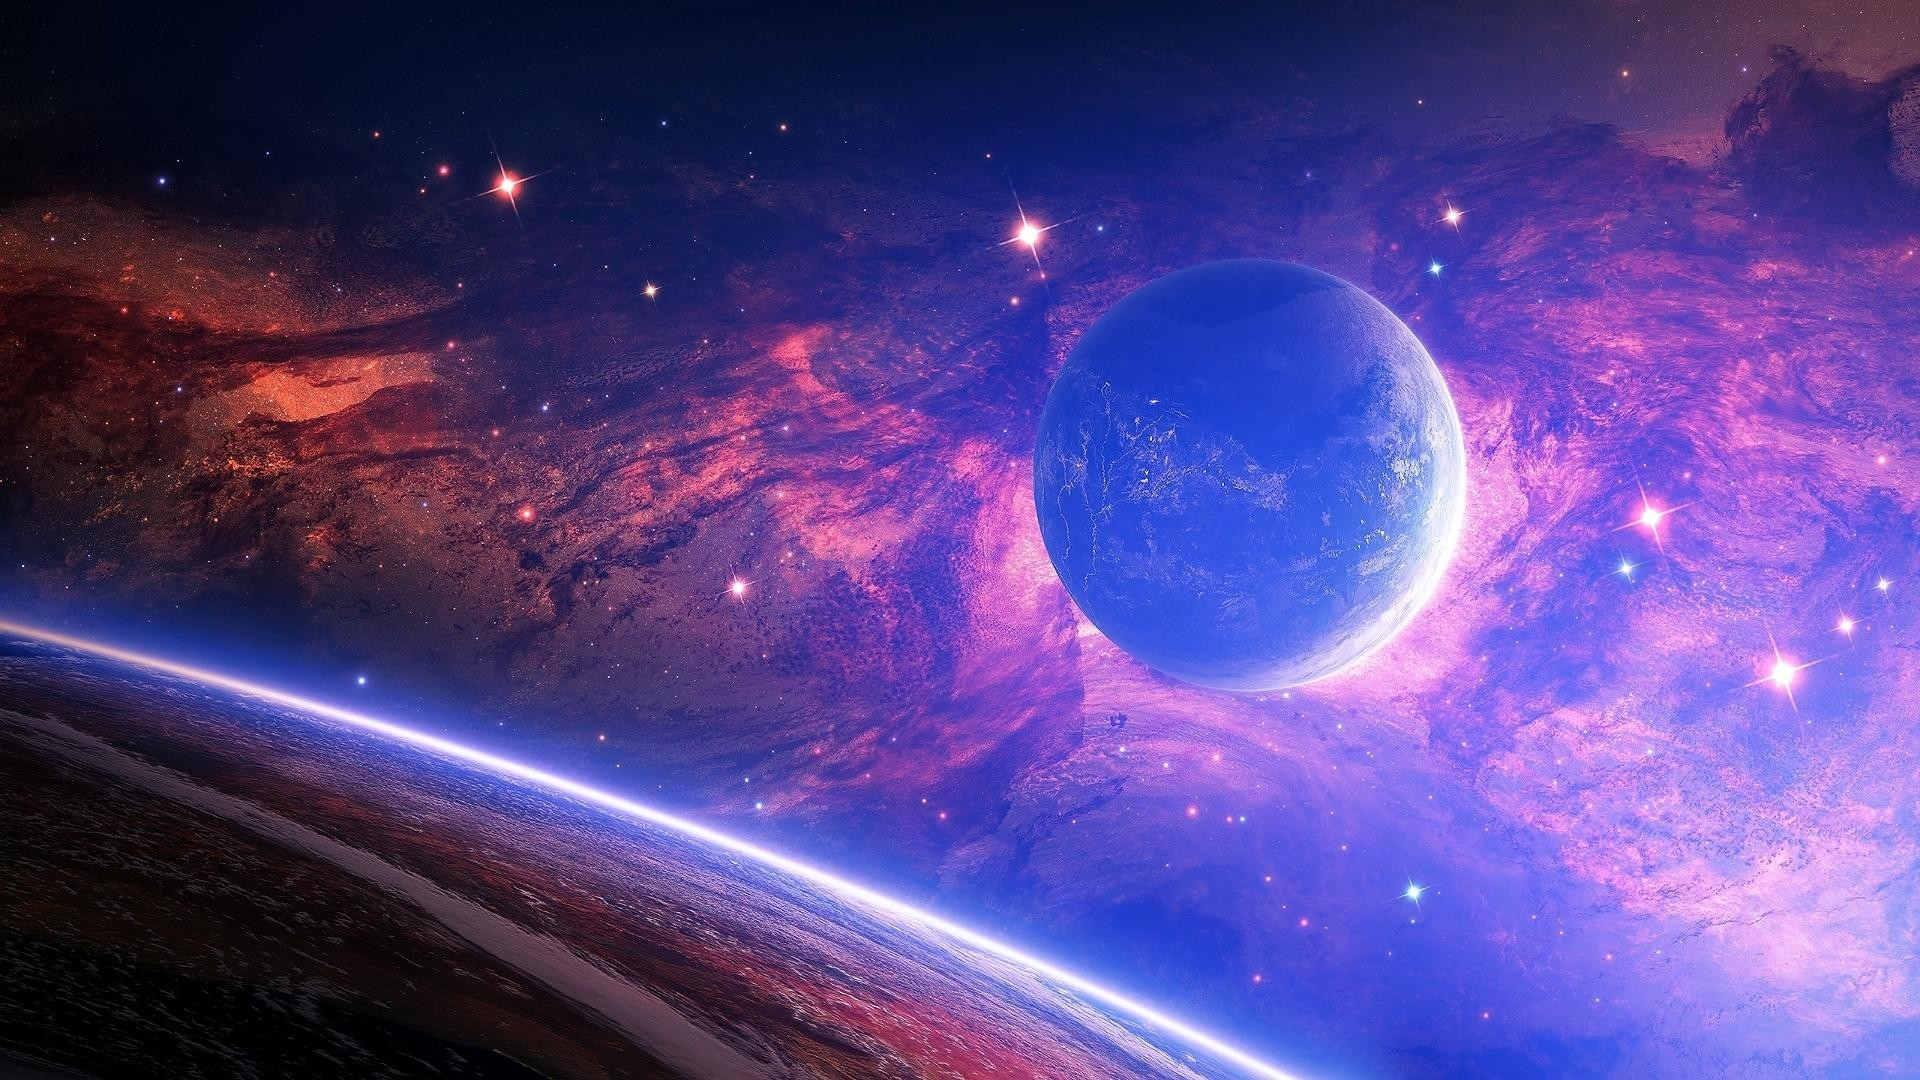 Beautiful Space HD Desktop Wallpapers 81 images